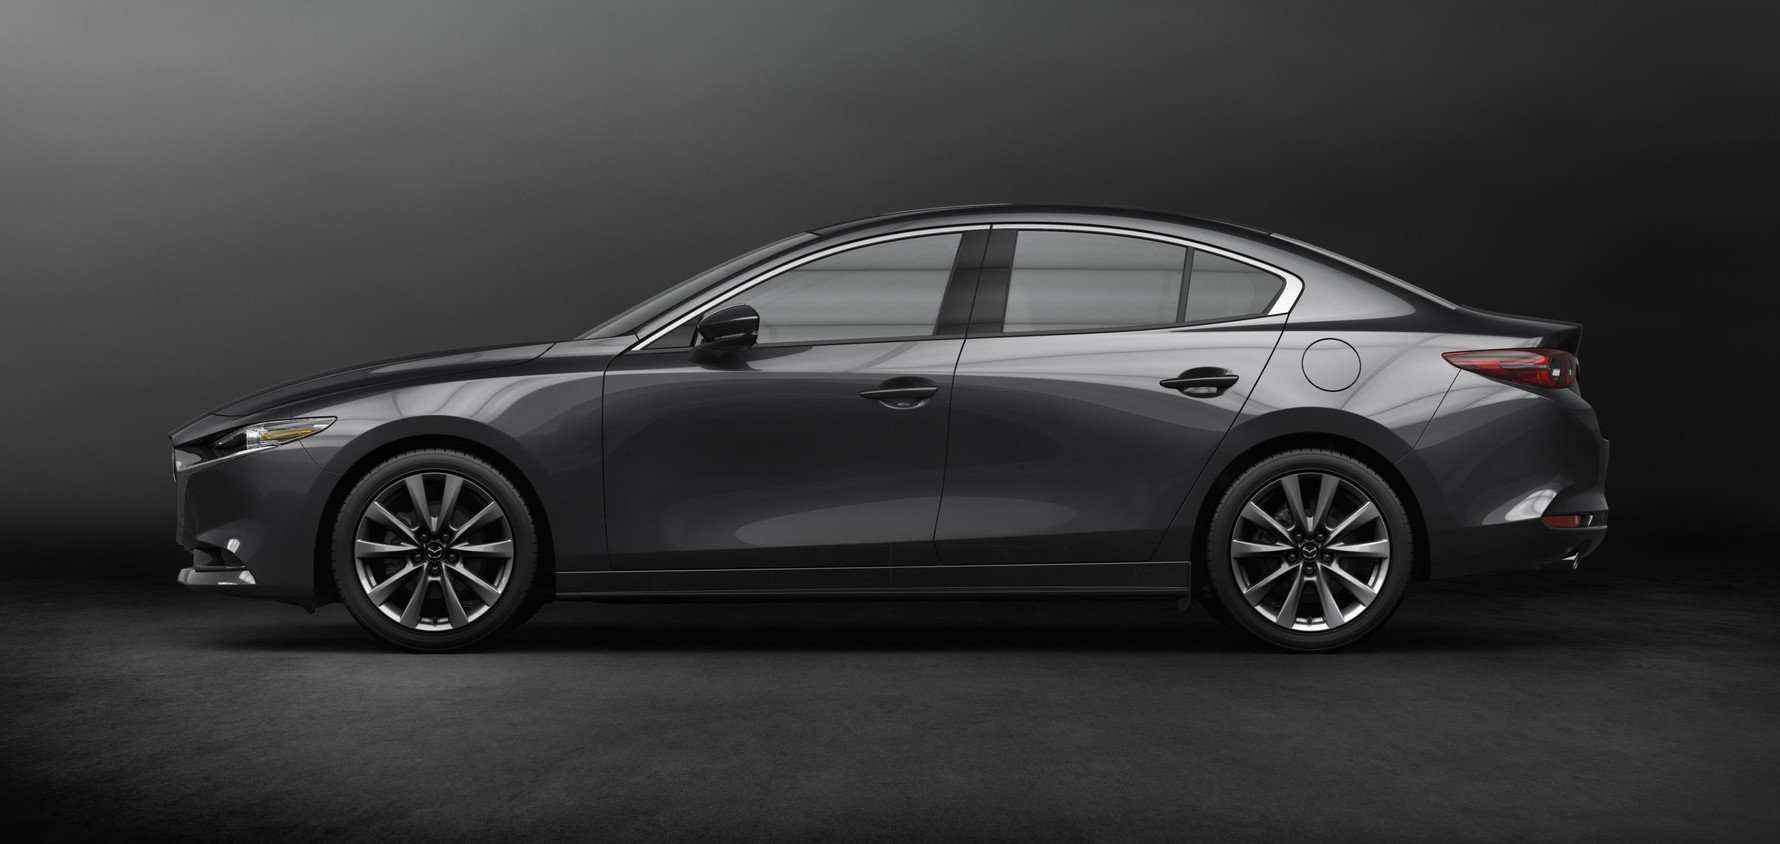 90 The Best 2019 Mazda 3 Style